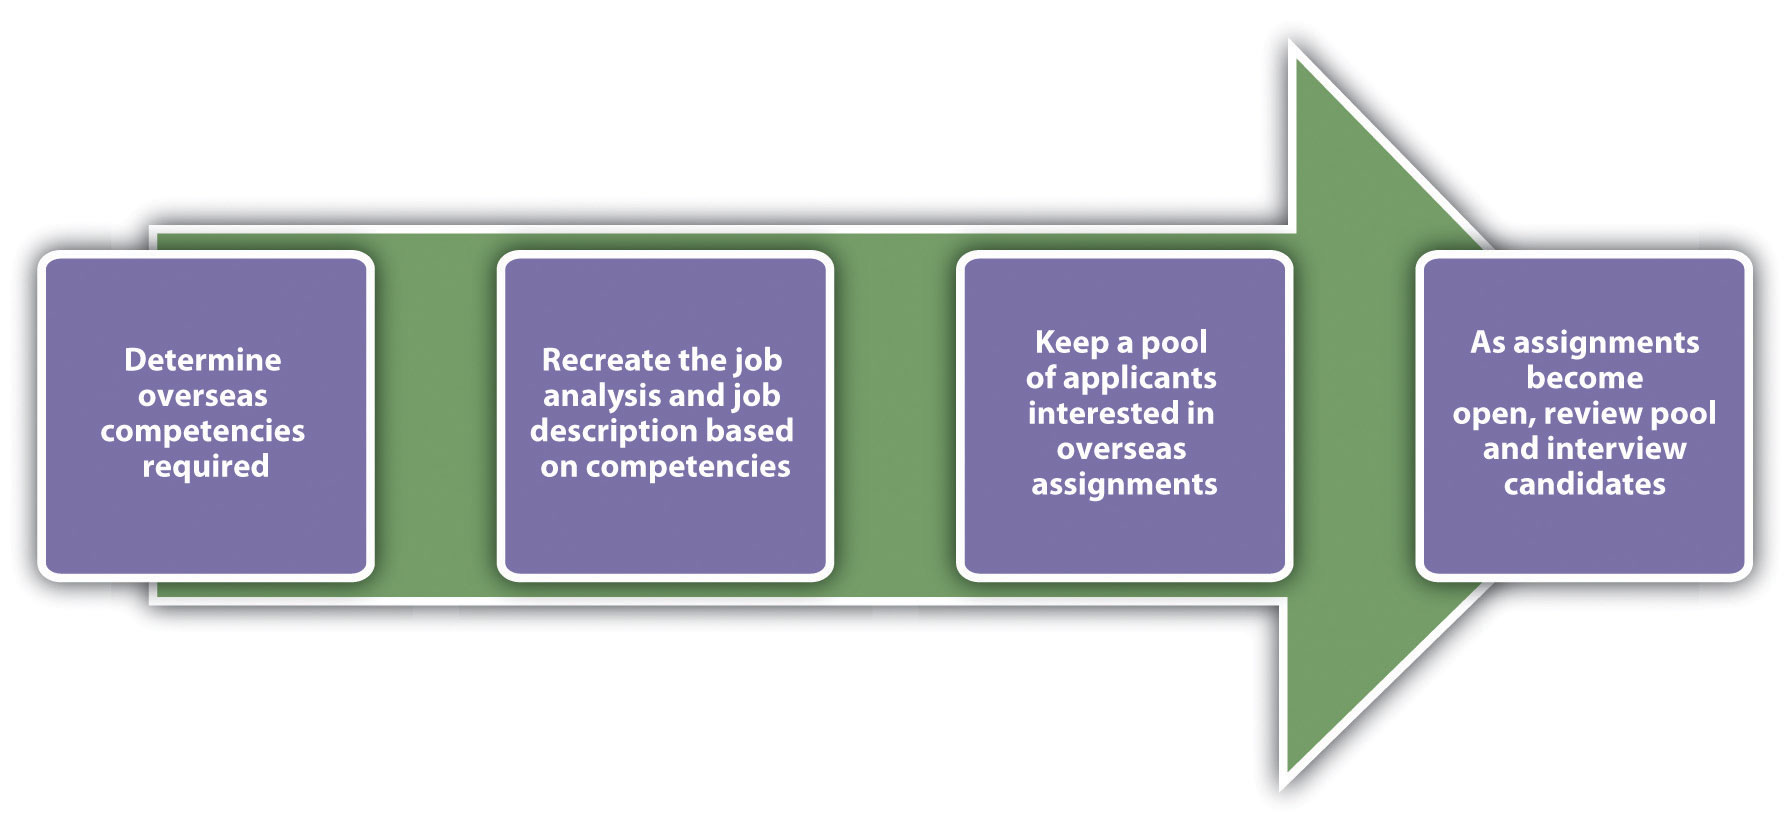 Sample Selection Process for Overseas Assignments: determine overseas competencies required; recreate the job analysis and job description based on competencies; keep a pool of applicants interested in overseas assignments; as assignments become open, review pool and interview candidates